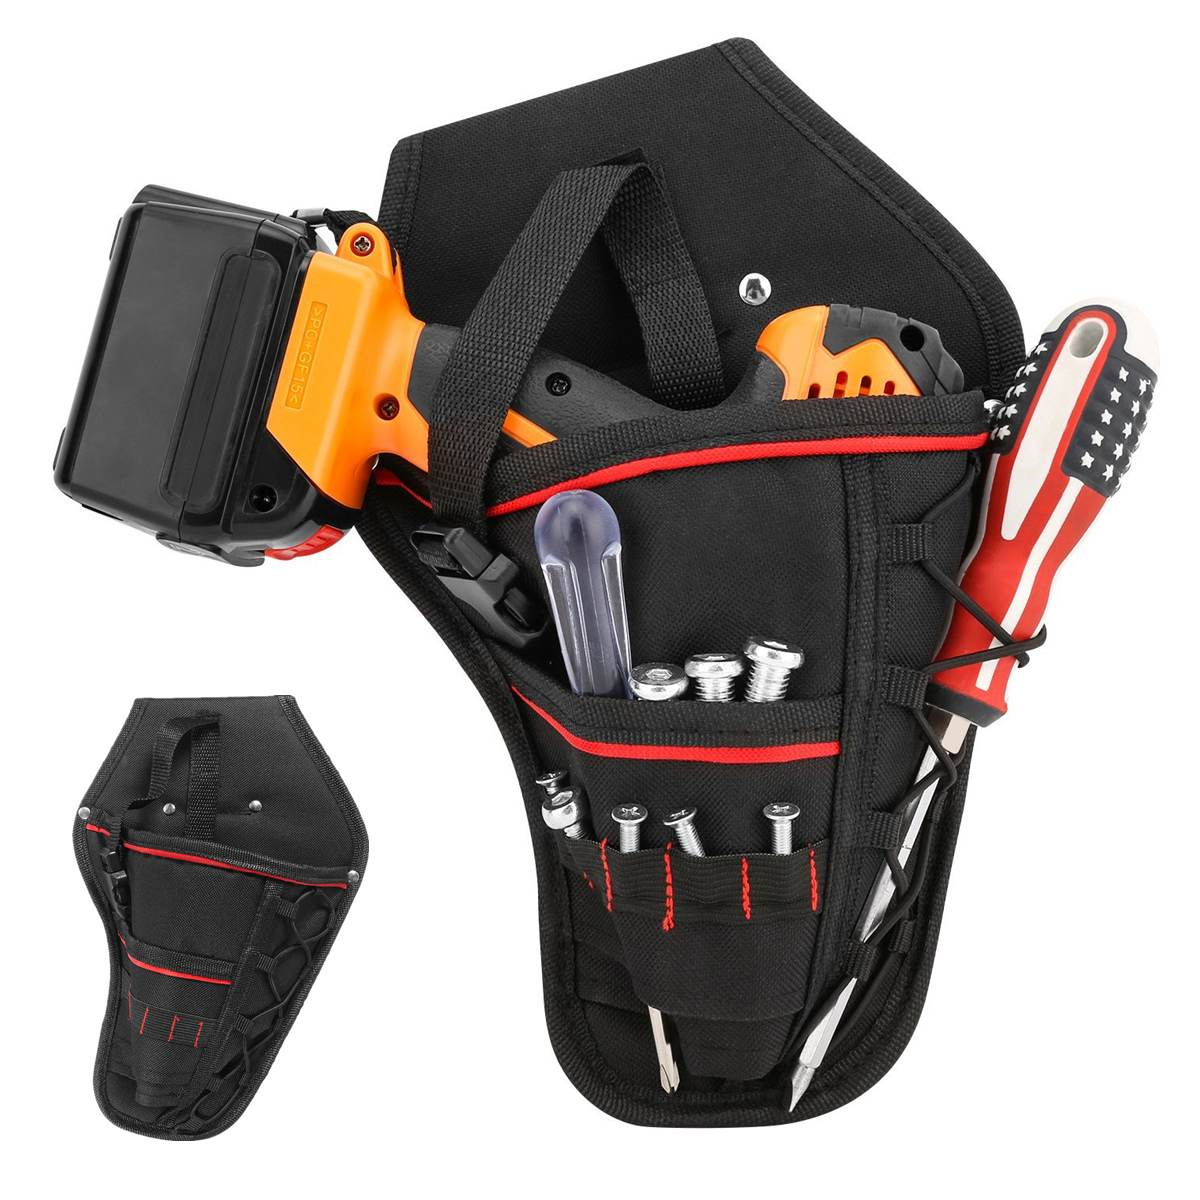 Cordless Electronic Drill Holster Tool Belt Pouch Adjustable Belt Storage Bag Tool Bag Pouch